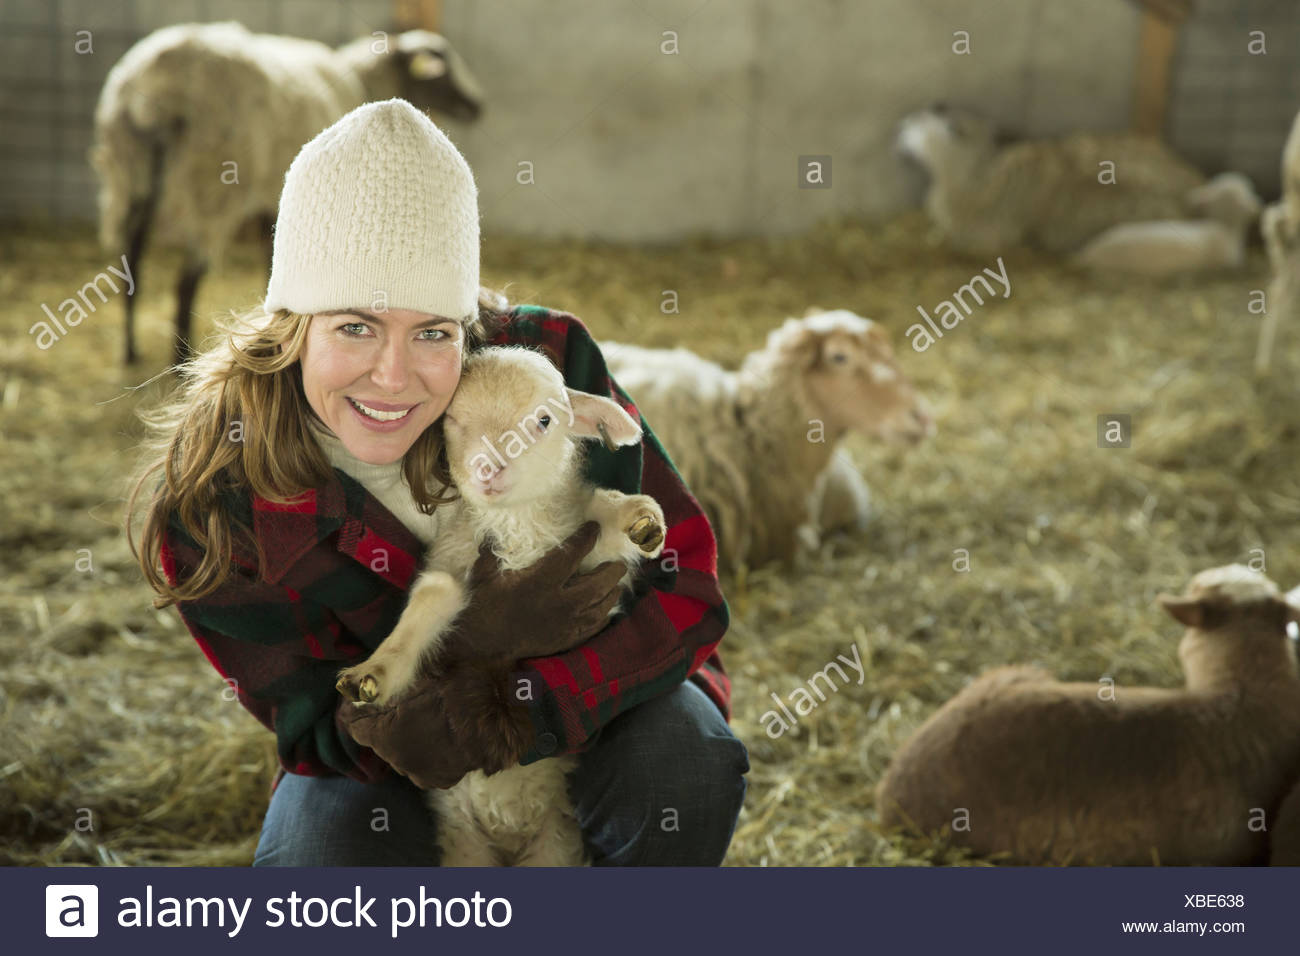 An Organic Farm in Winter in Cold Spring New York State A family working caring for the livestock A woman holding a small lamb - Stock Image